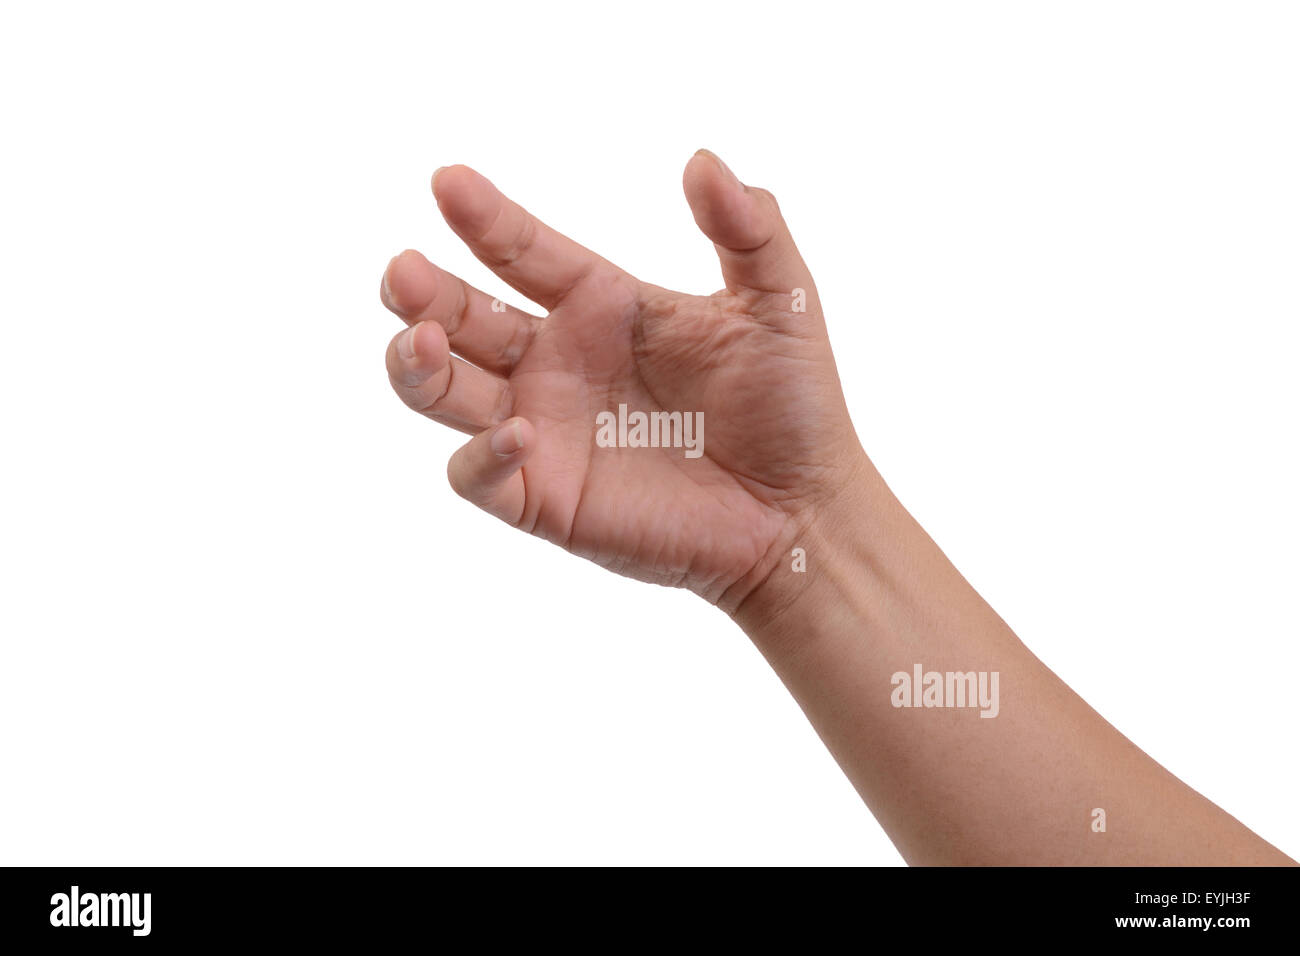 One hand like holding something that's invisible on white background. - Stock Image